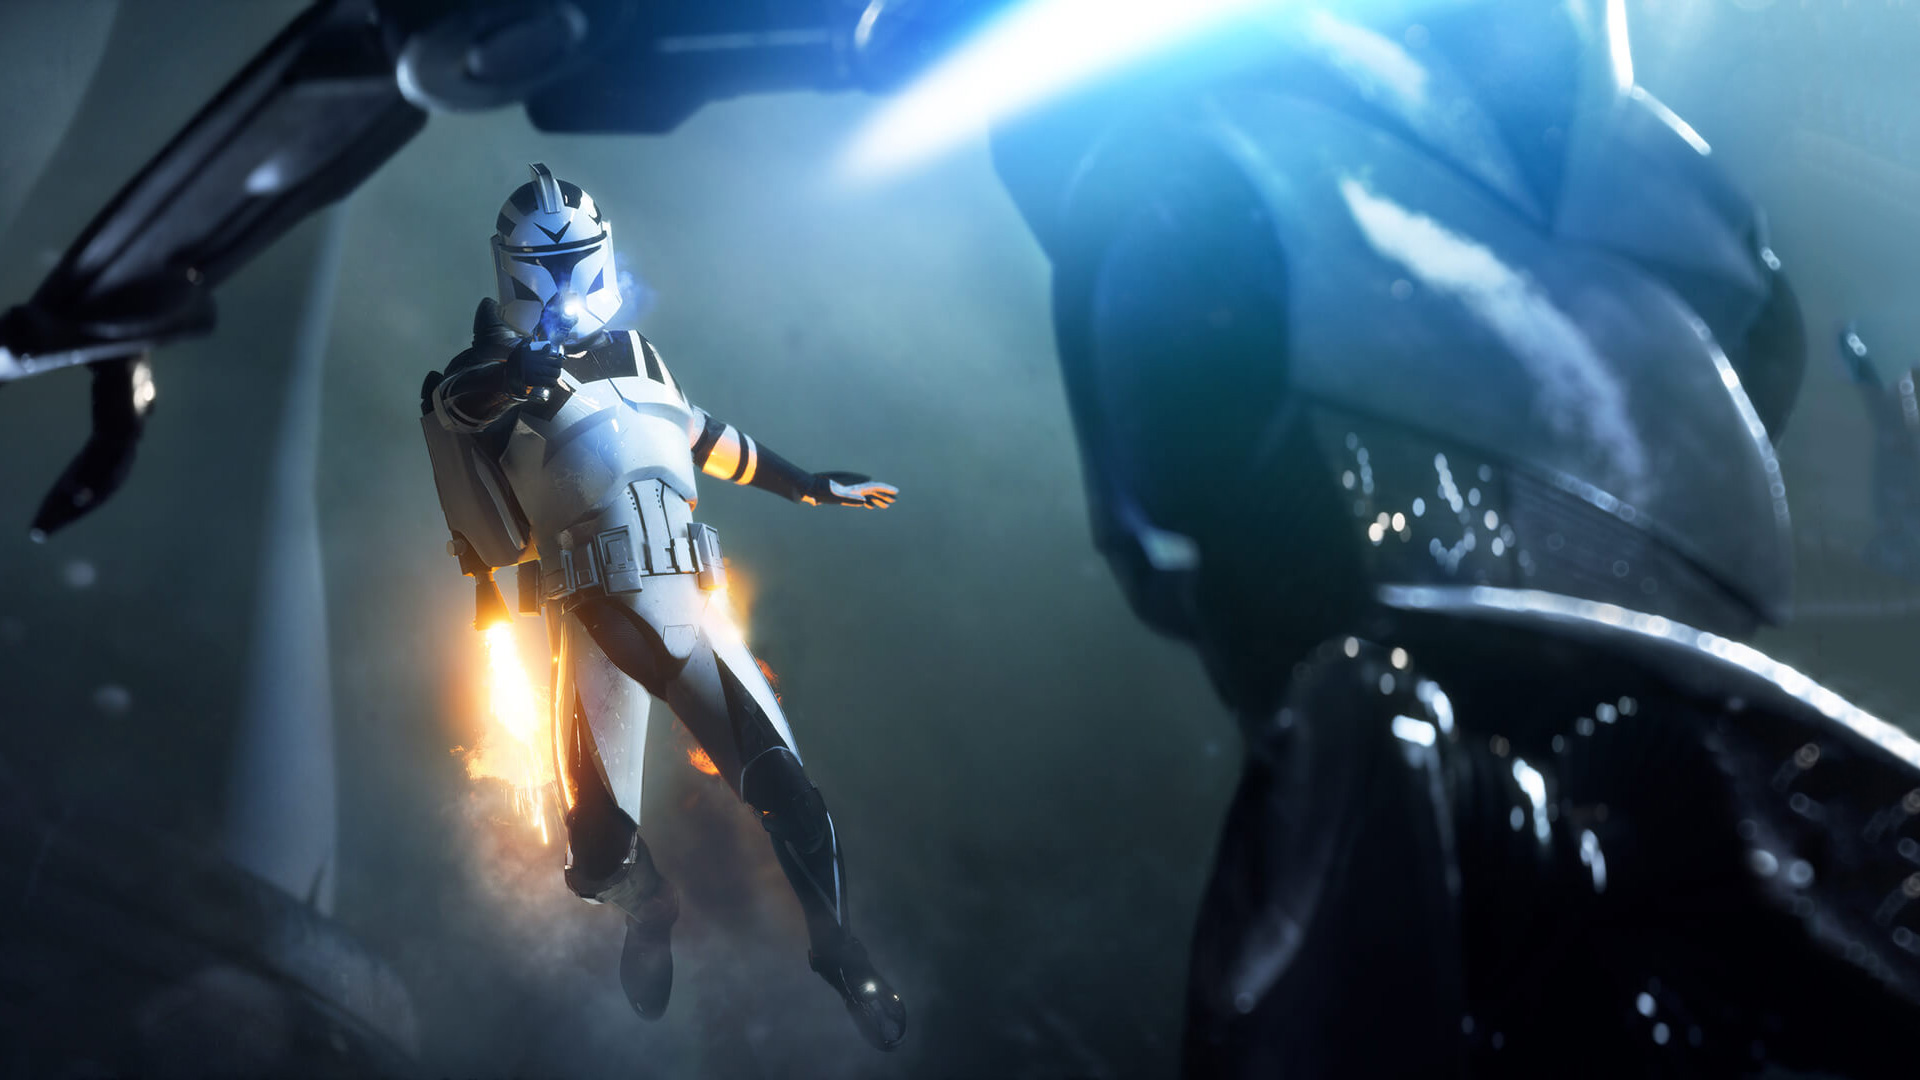 Star Wars Battlefront 2     PS Wallpapers Select the image above to view the wallpaper full screen  2  Press the  PlayStation 4 screen capture button on the controller  Star Wars  Battlefront 2